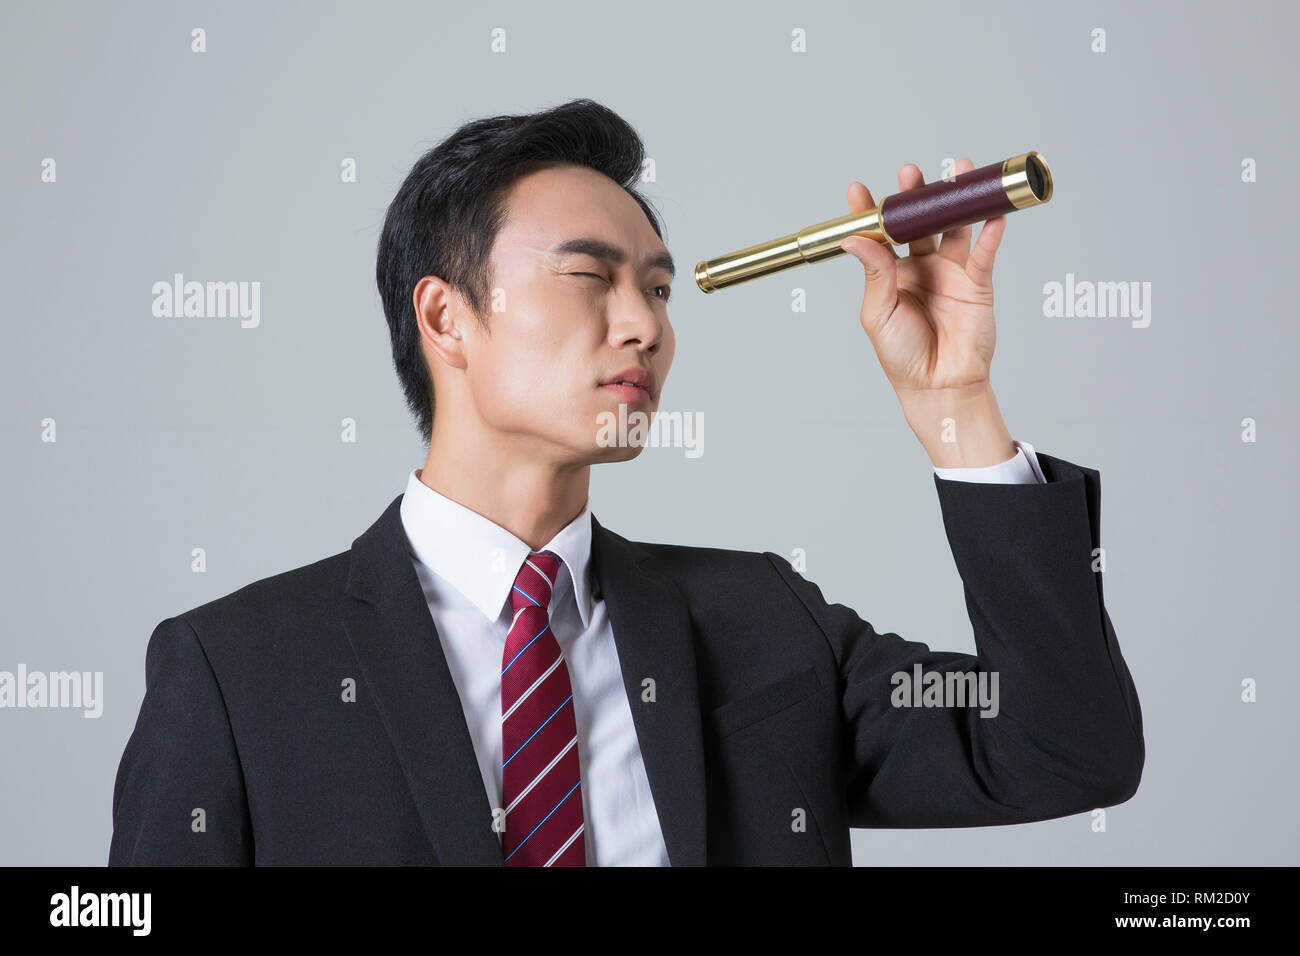 Young businessman concept photo. 131 - Stock Image